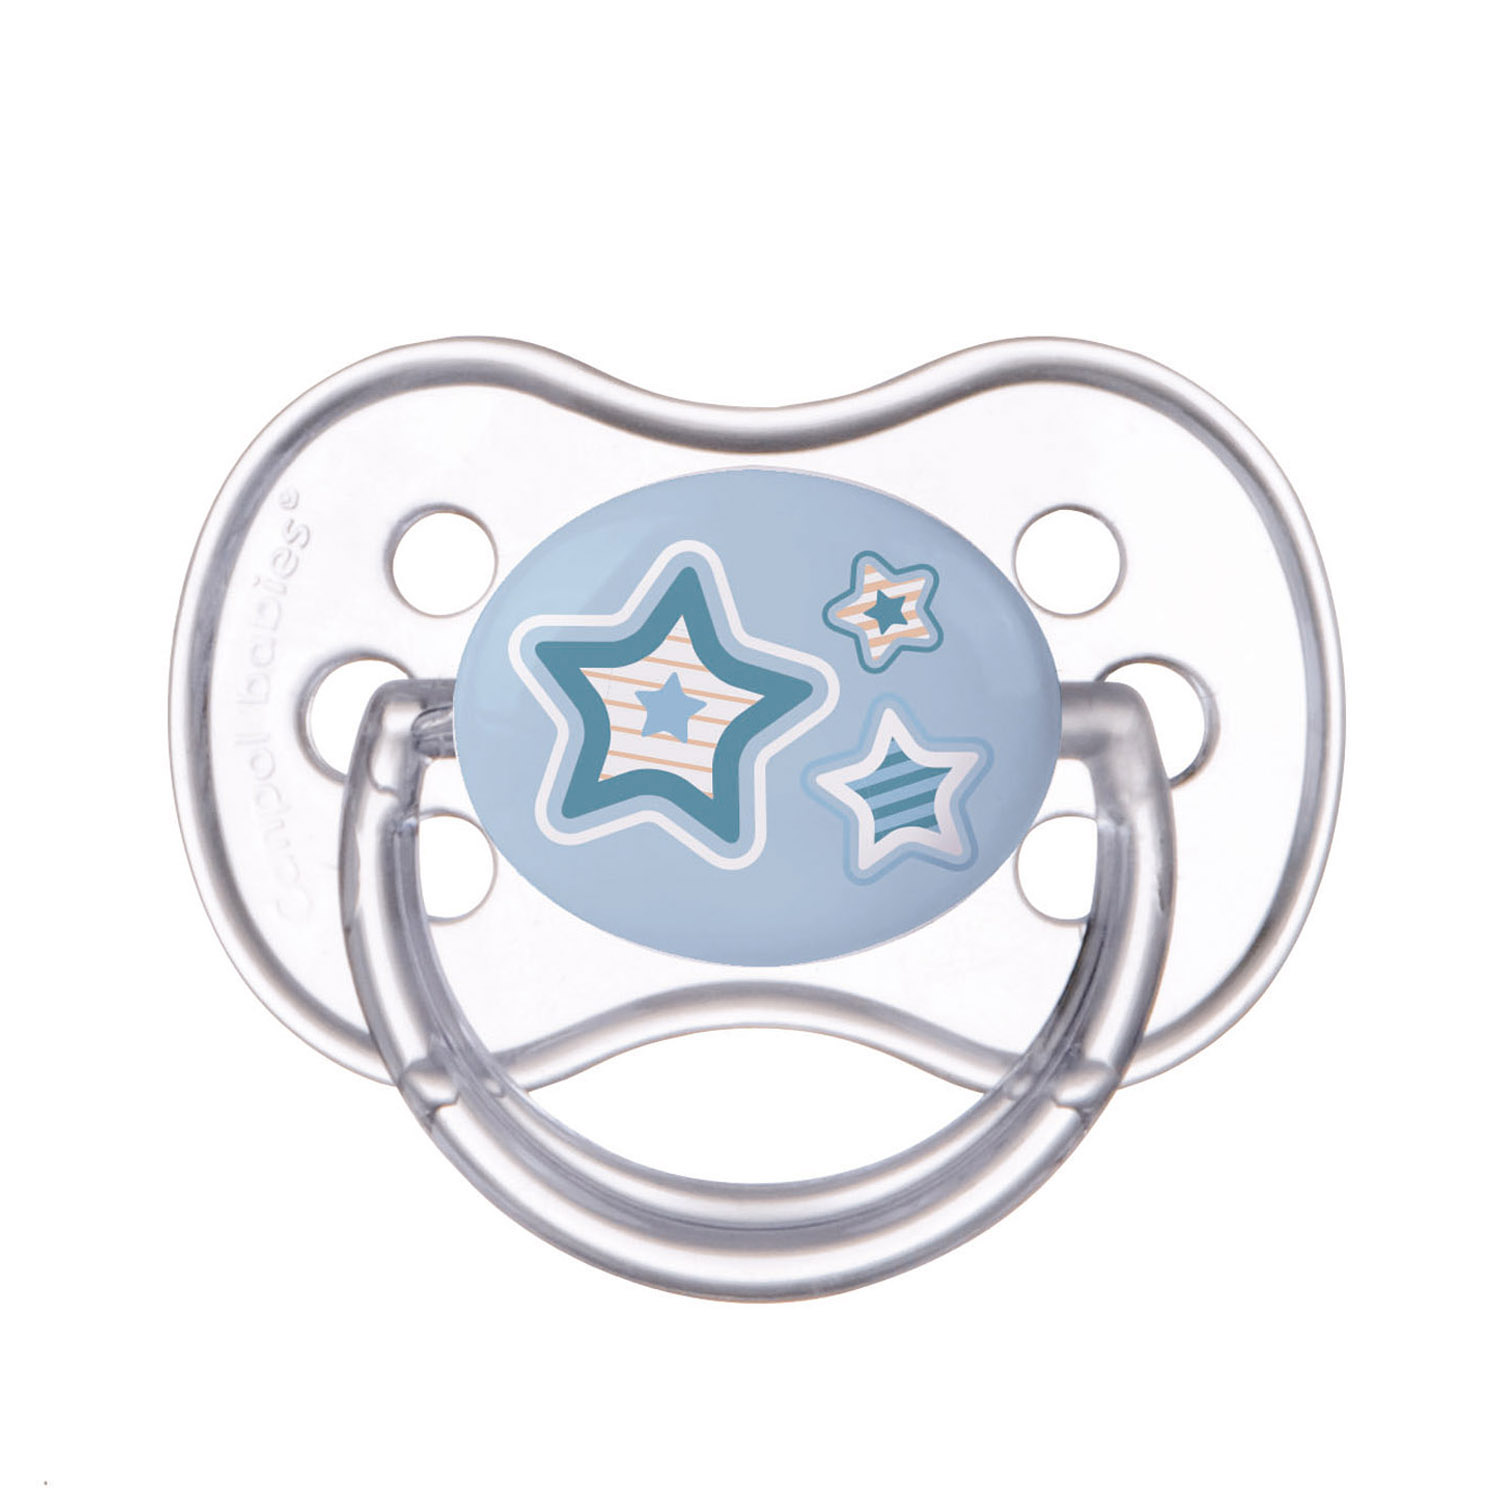 Canpol babies Silicone Symmetric Soother 0-6m NEWBORN BABY blue